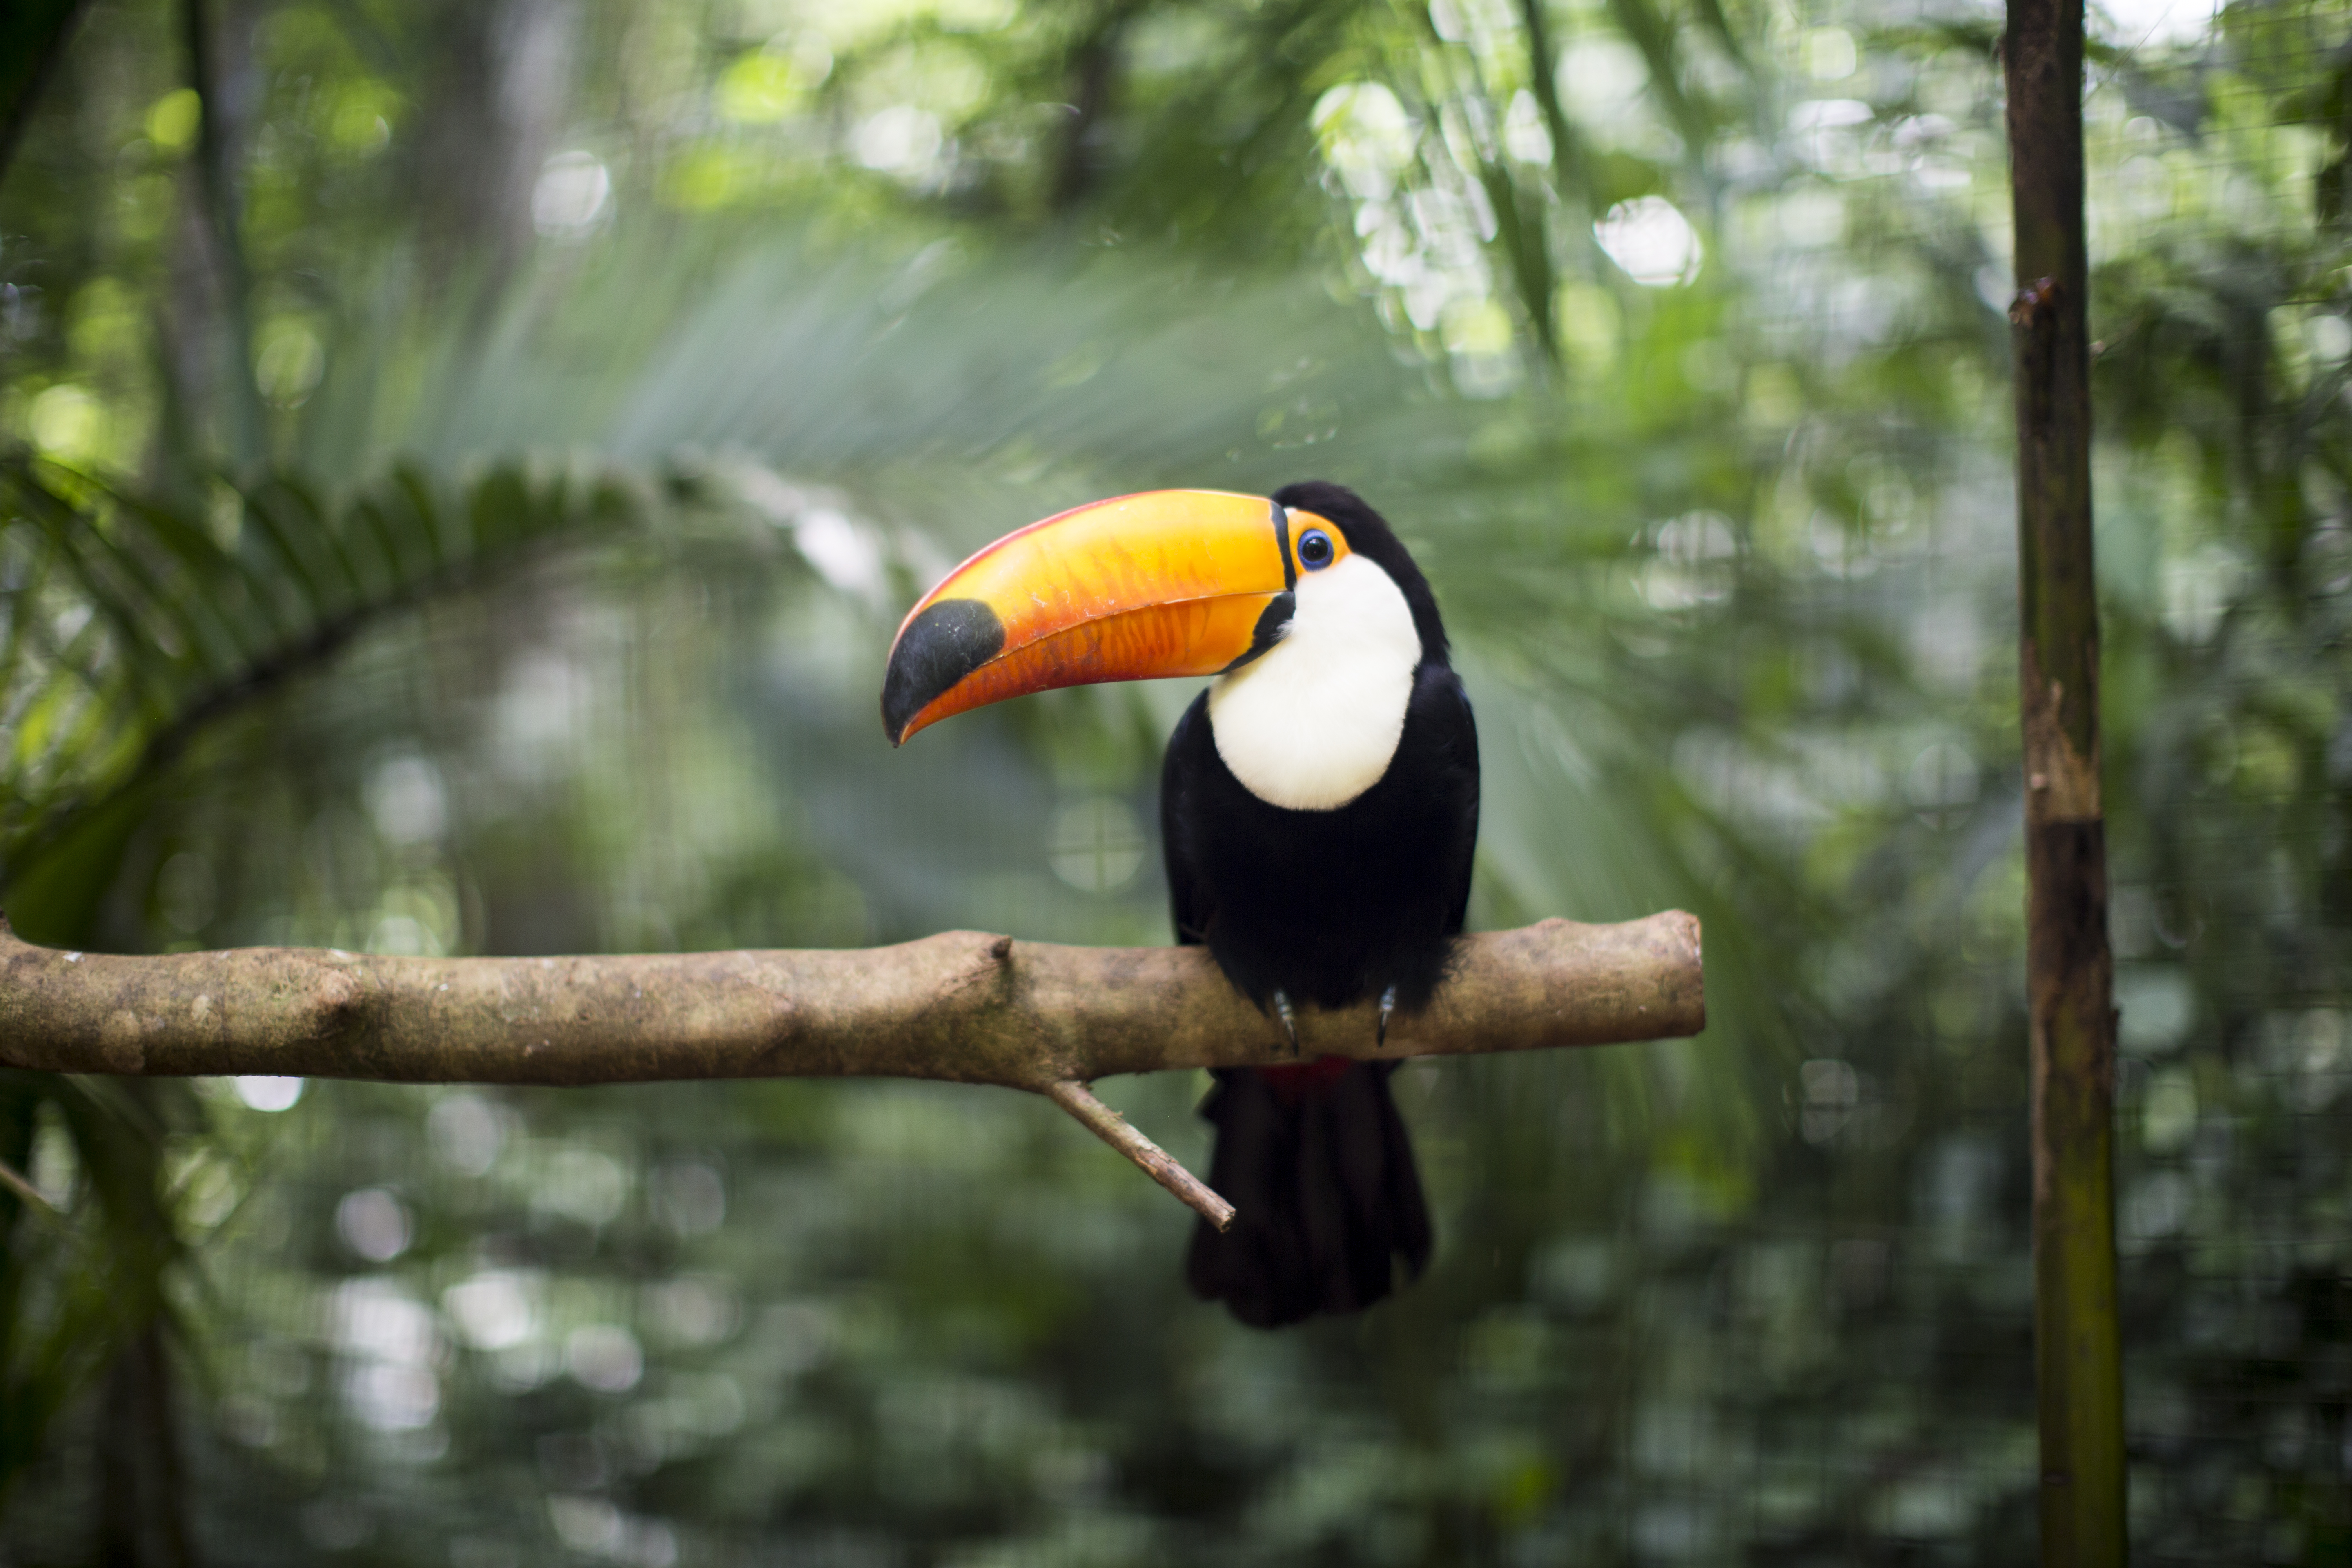 animals that live in the canopy layer of the rainforest | sciencing